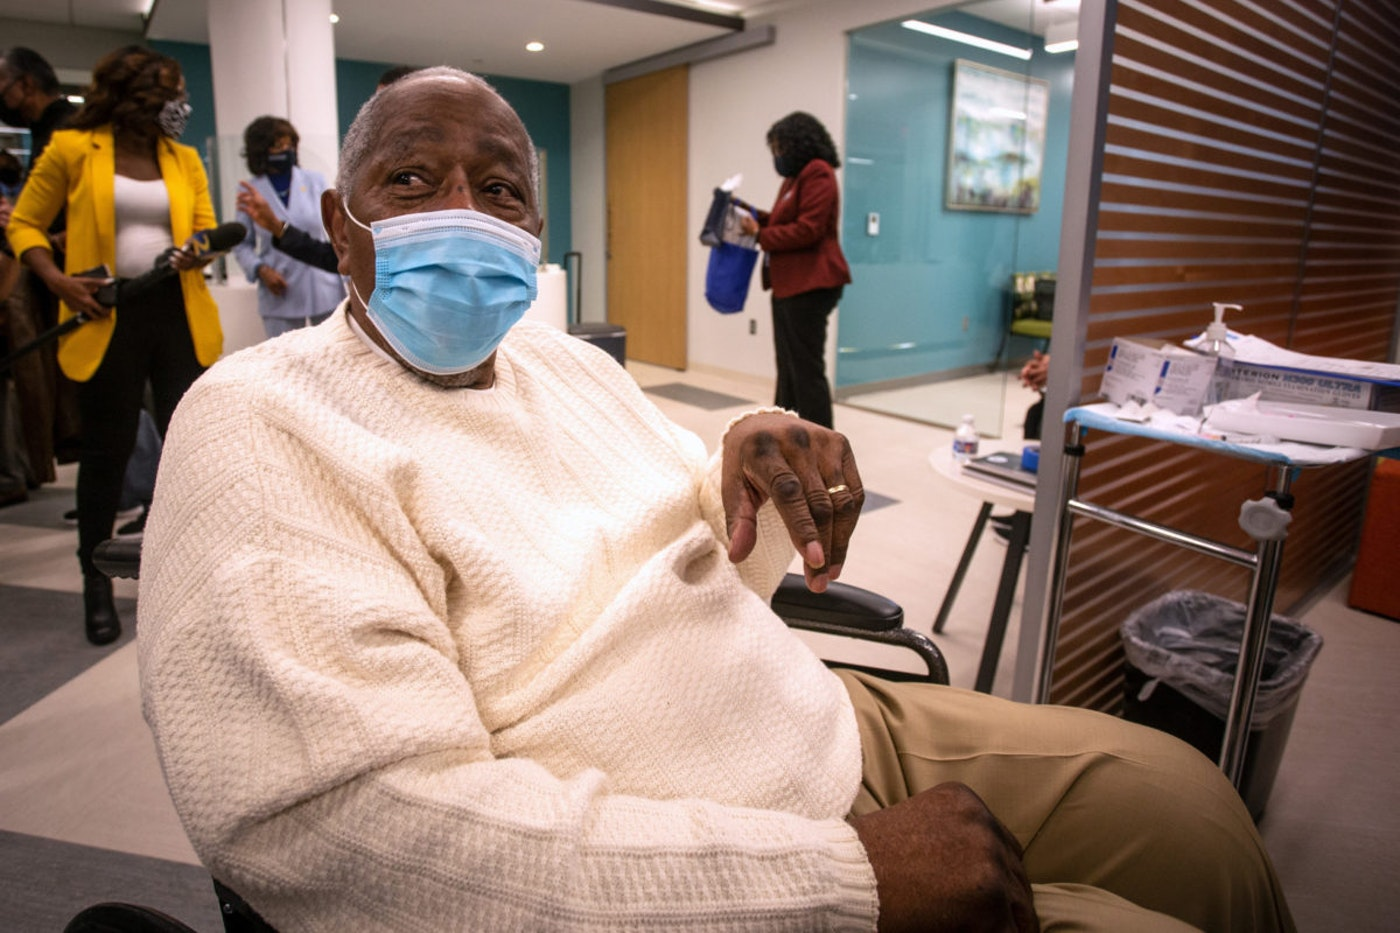 Baseball Hall of Famer Hank Aaron waits to receive his COVID-19 vaccination on Tuesday, Jan. 5, 2021, at the Morehouse School of Medicine in Atlanta. (AP Photo/Ron Harris)